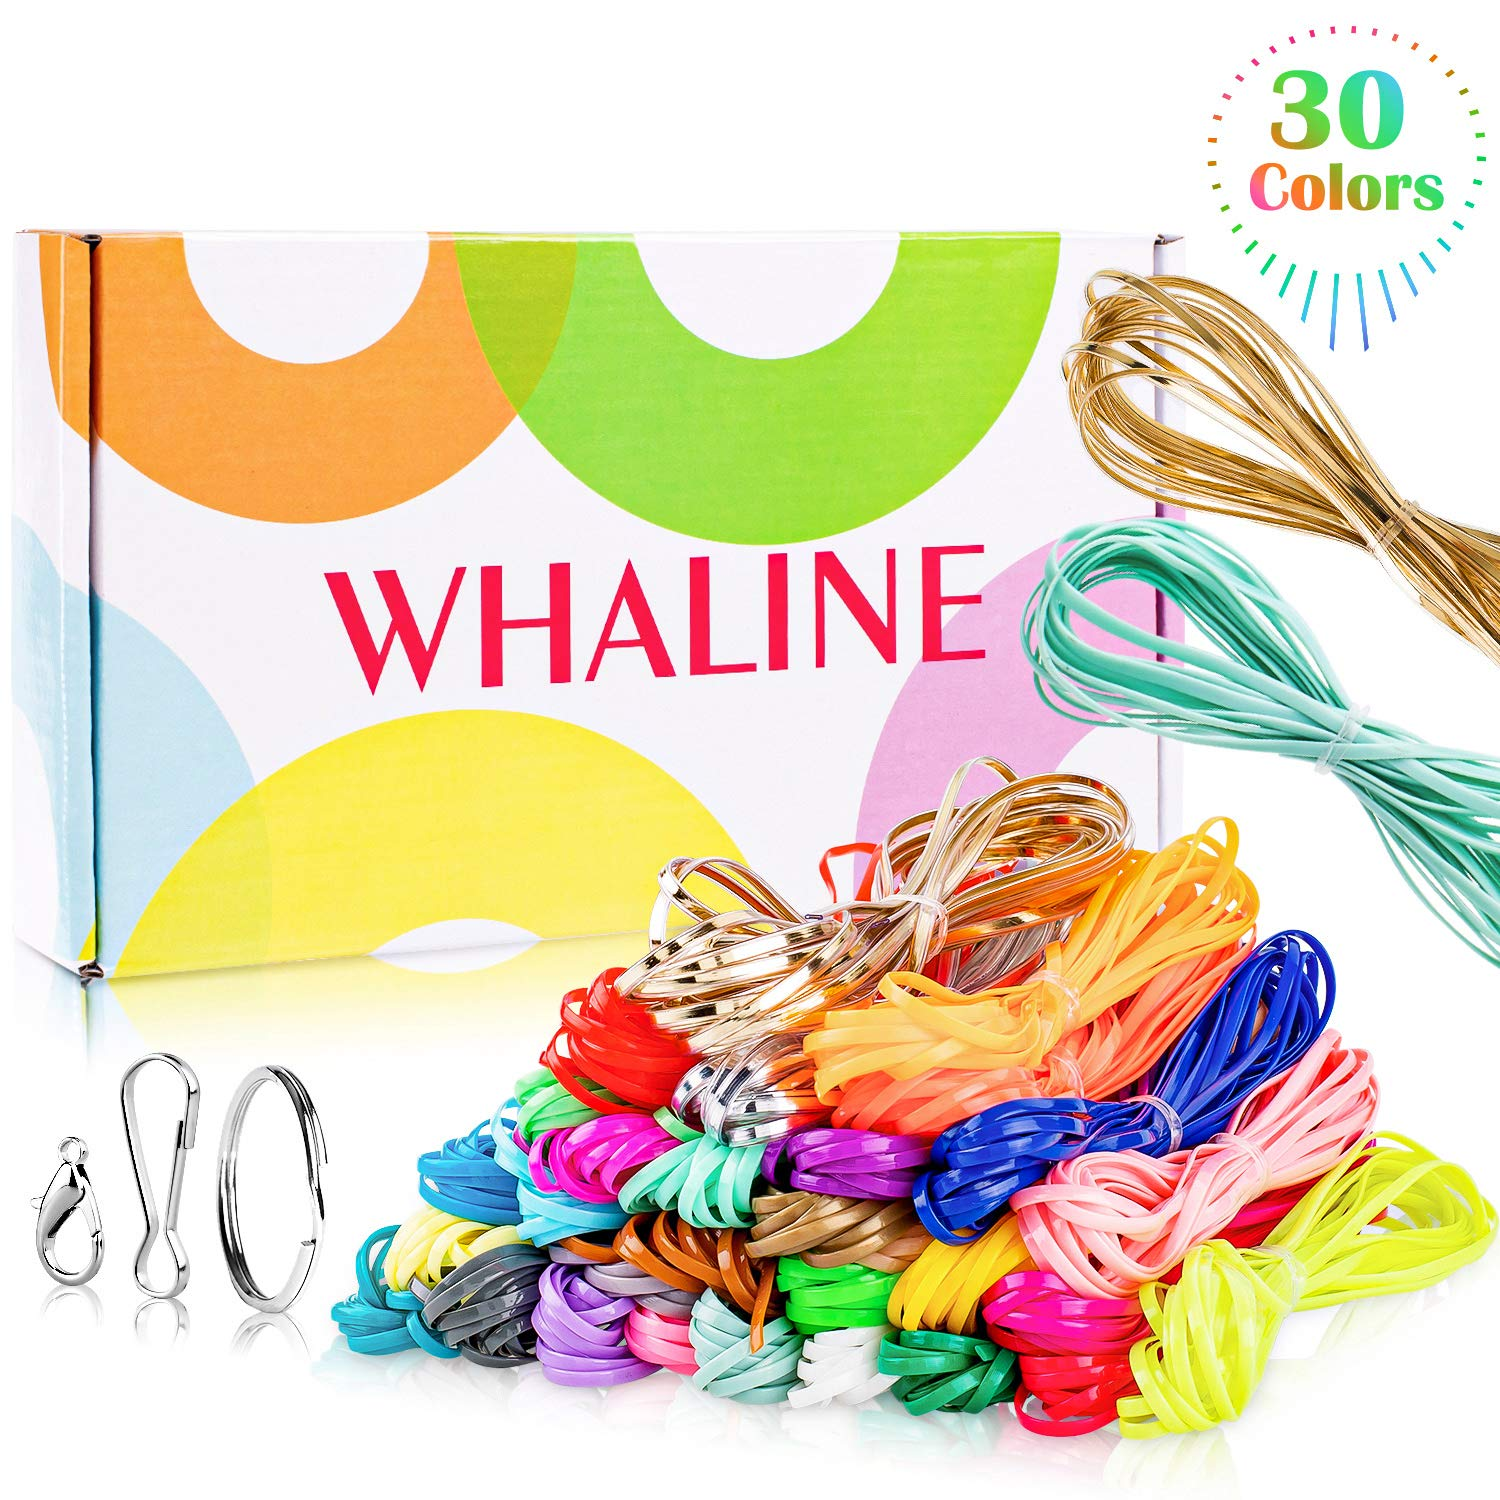 Whaline 30 Colors Plastic Lacing Cords with 20 Keychain Clips 20 Hooks and 10 Clasps, Gimp Bracelet Making Scoubidou Strings with Box for DIY Craft Jewelry Making (492 feet) by Whaline